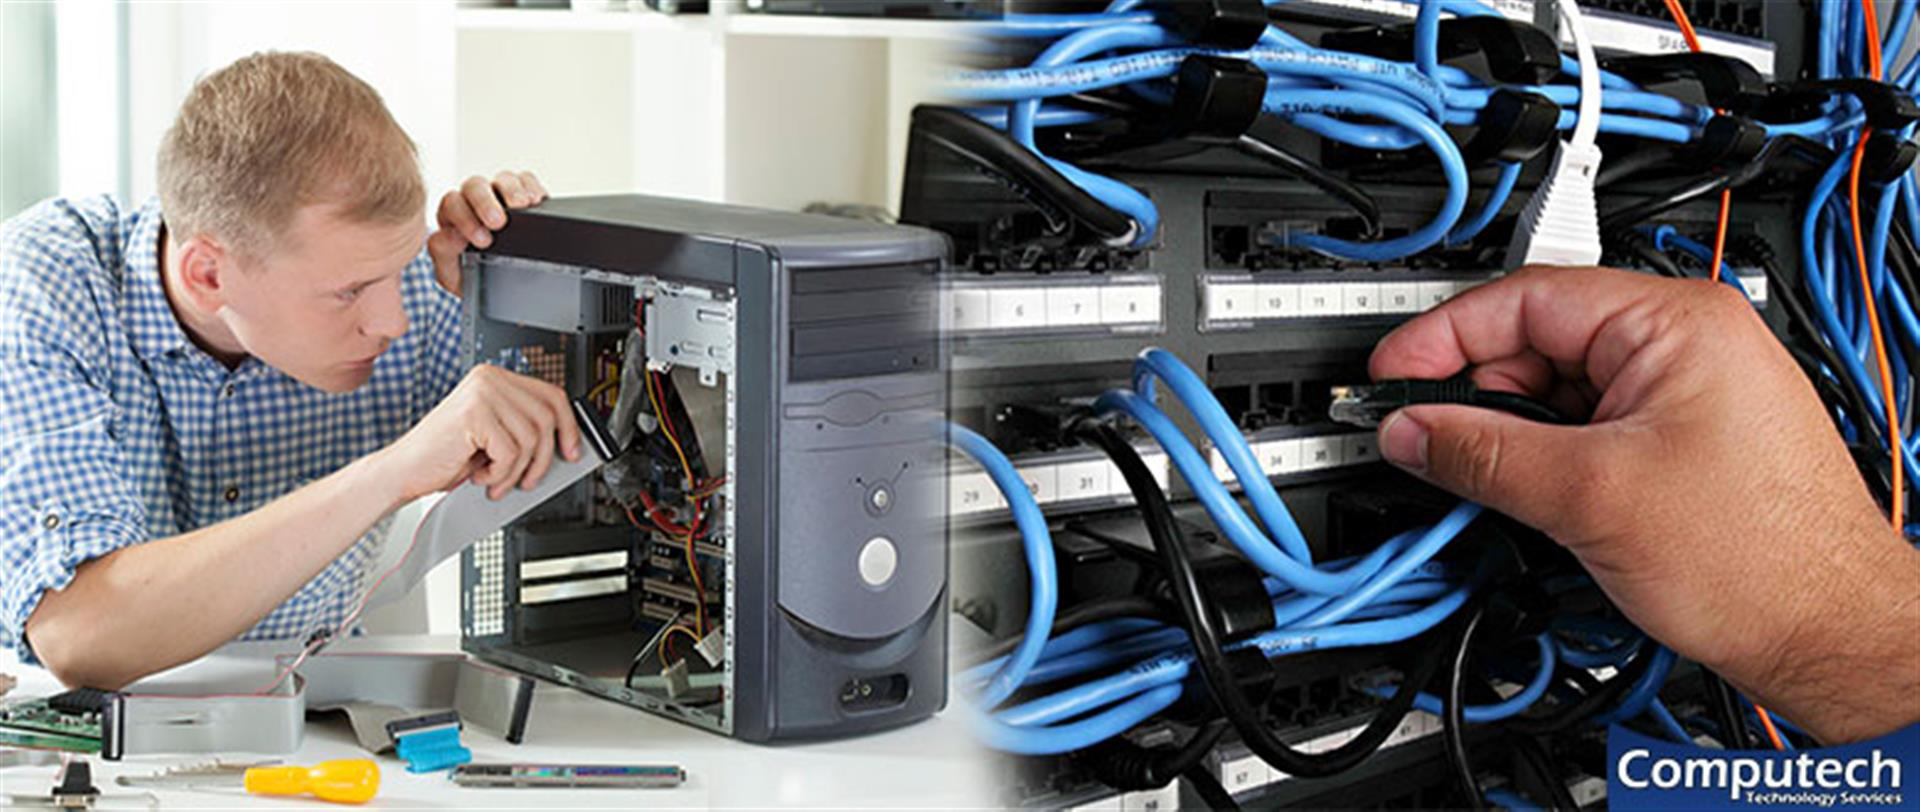 Parker Arizona On Site PC & Printer Repair, Networking, Telecom and High Speed Data Wiring Services